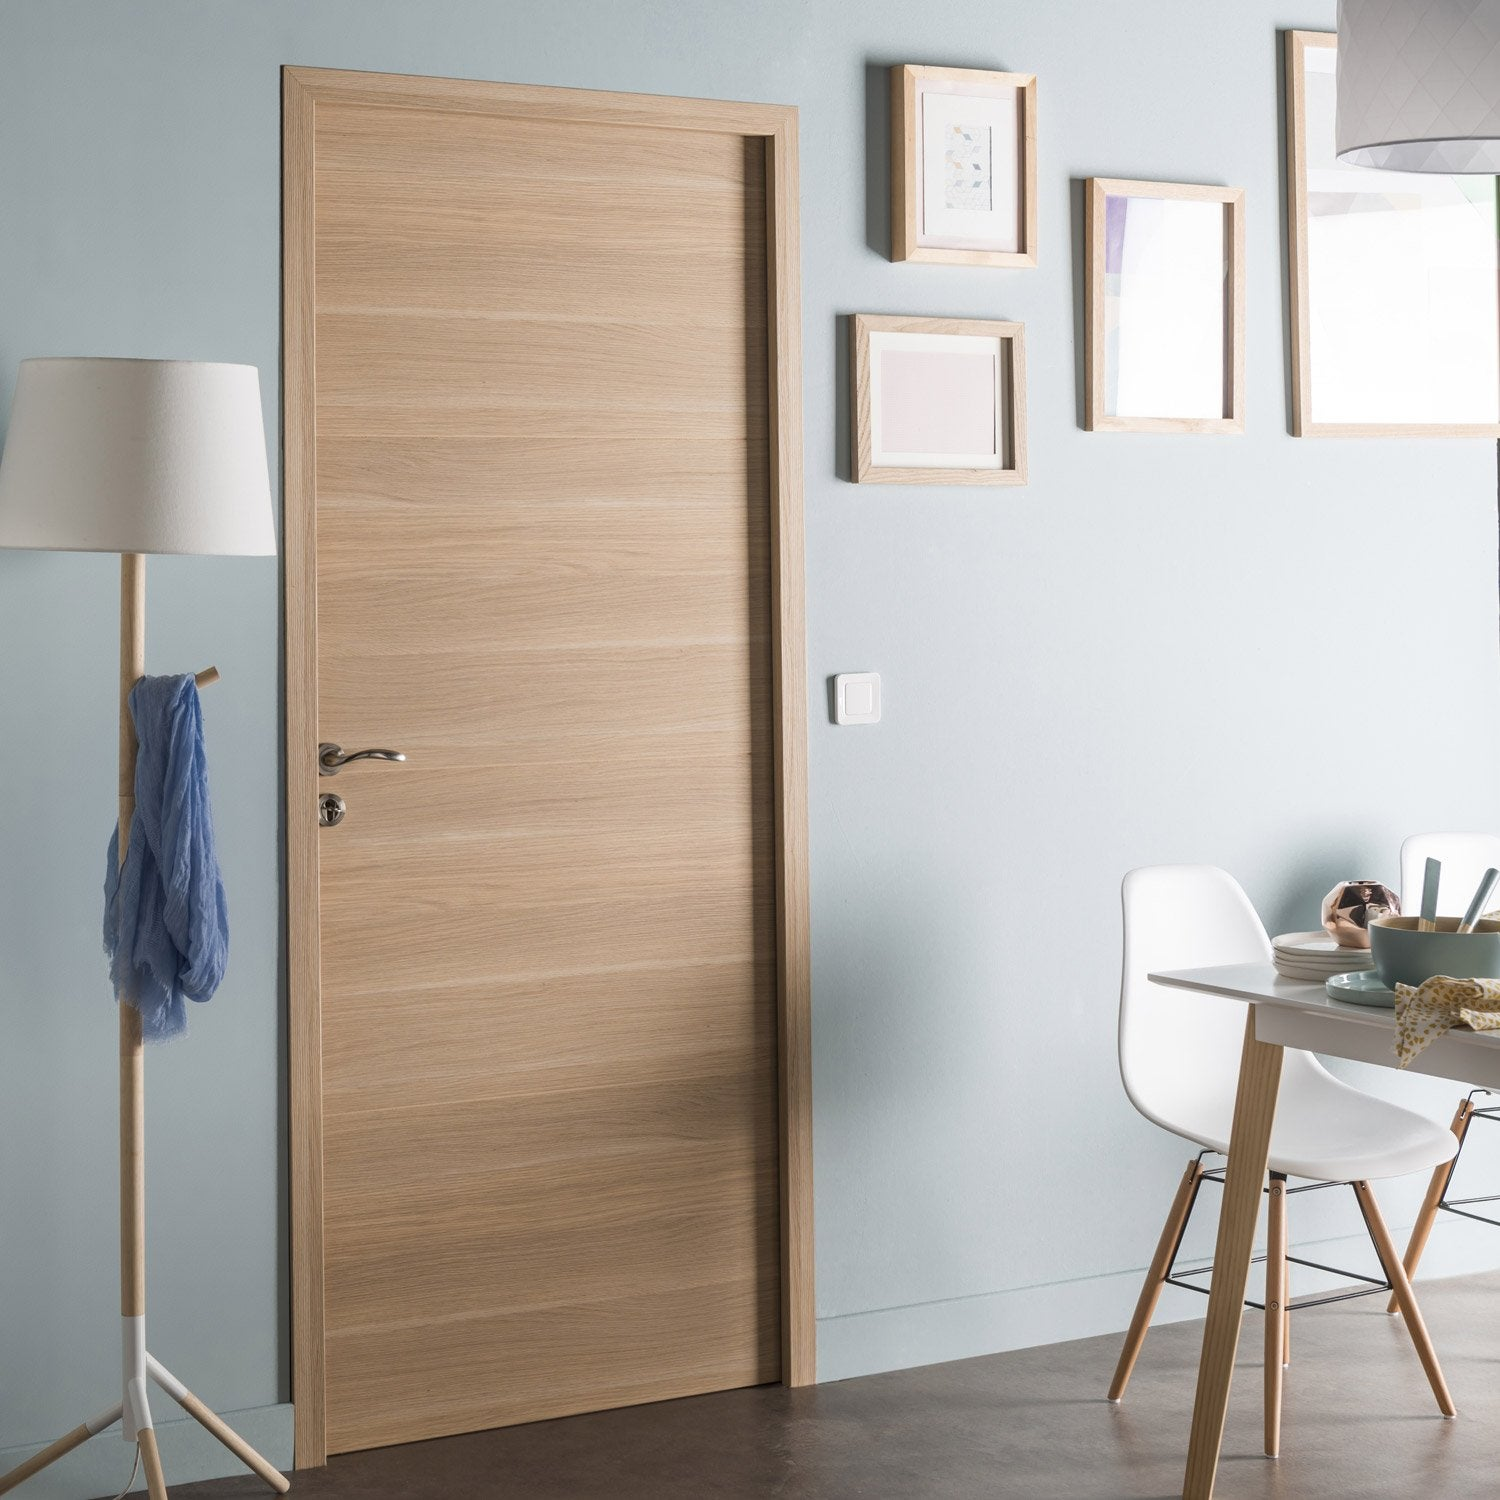 Bloc porte rev tu madrid 2 artens x cm for Dimension porte interieur